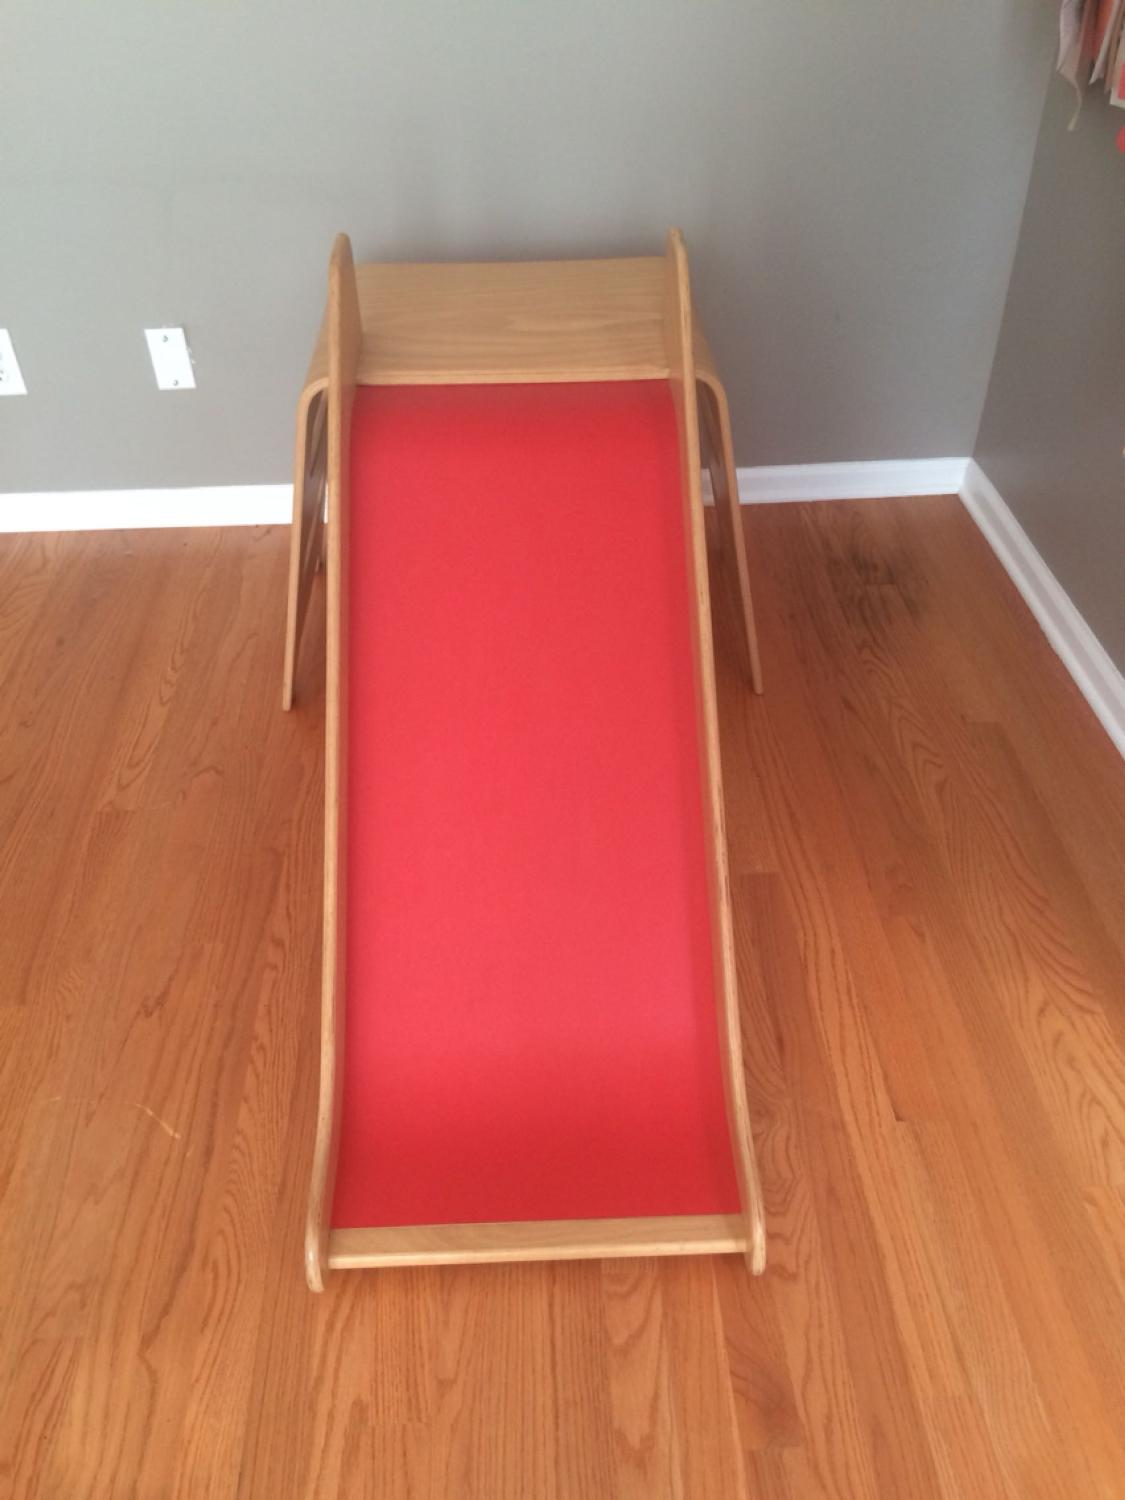 Find More Ikea Slide For Sale At Up To 90 Off